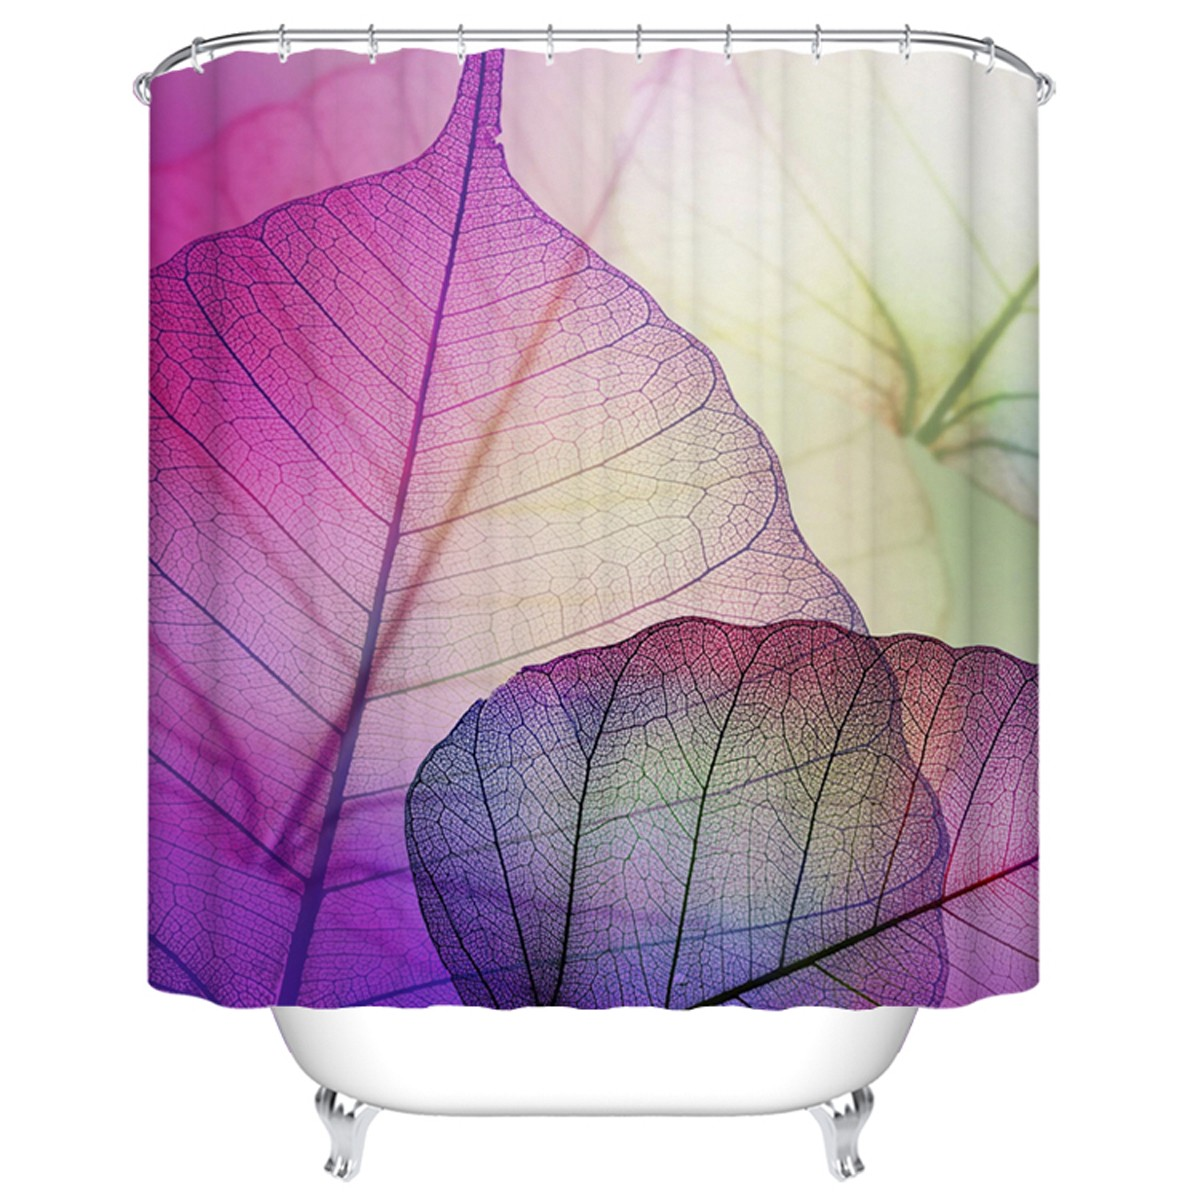 "Fashionable Bathroom Waterproof Shower Curtain, 70"" W x 72"" H (DK-YT020)"